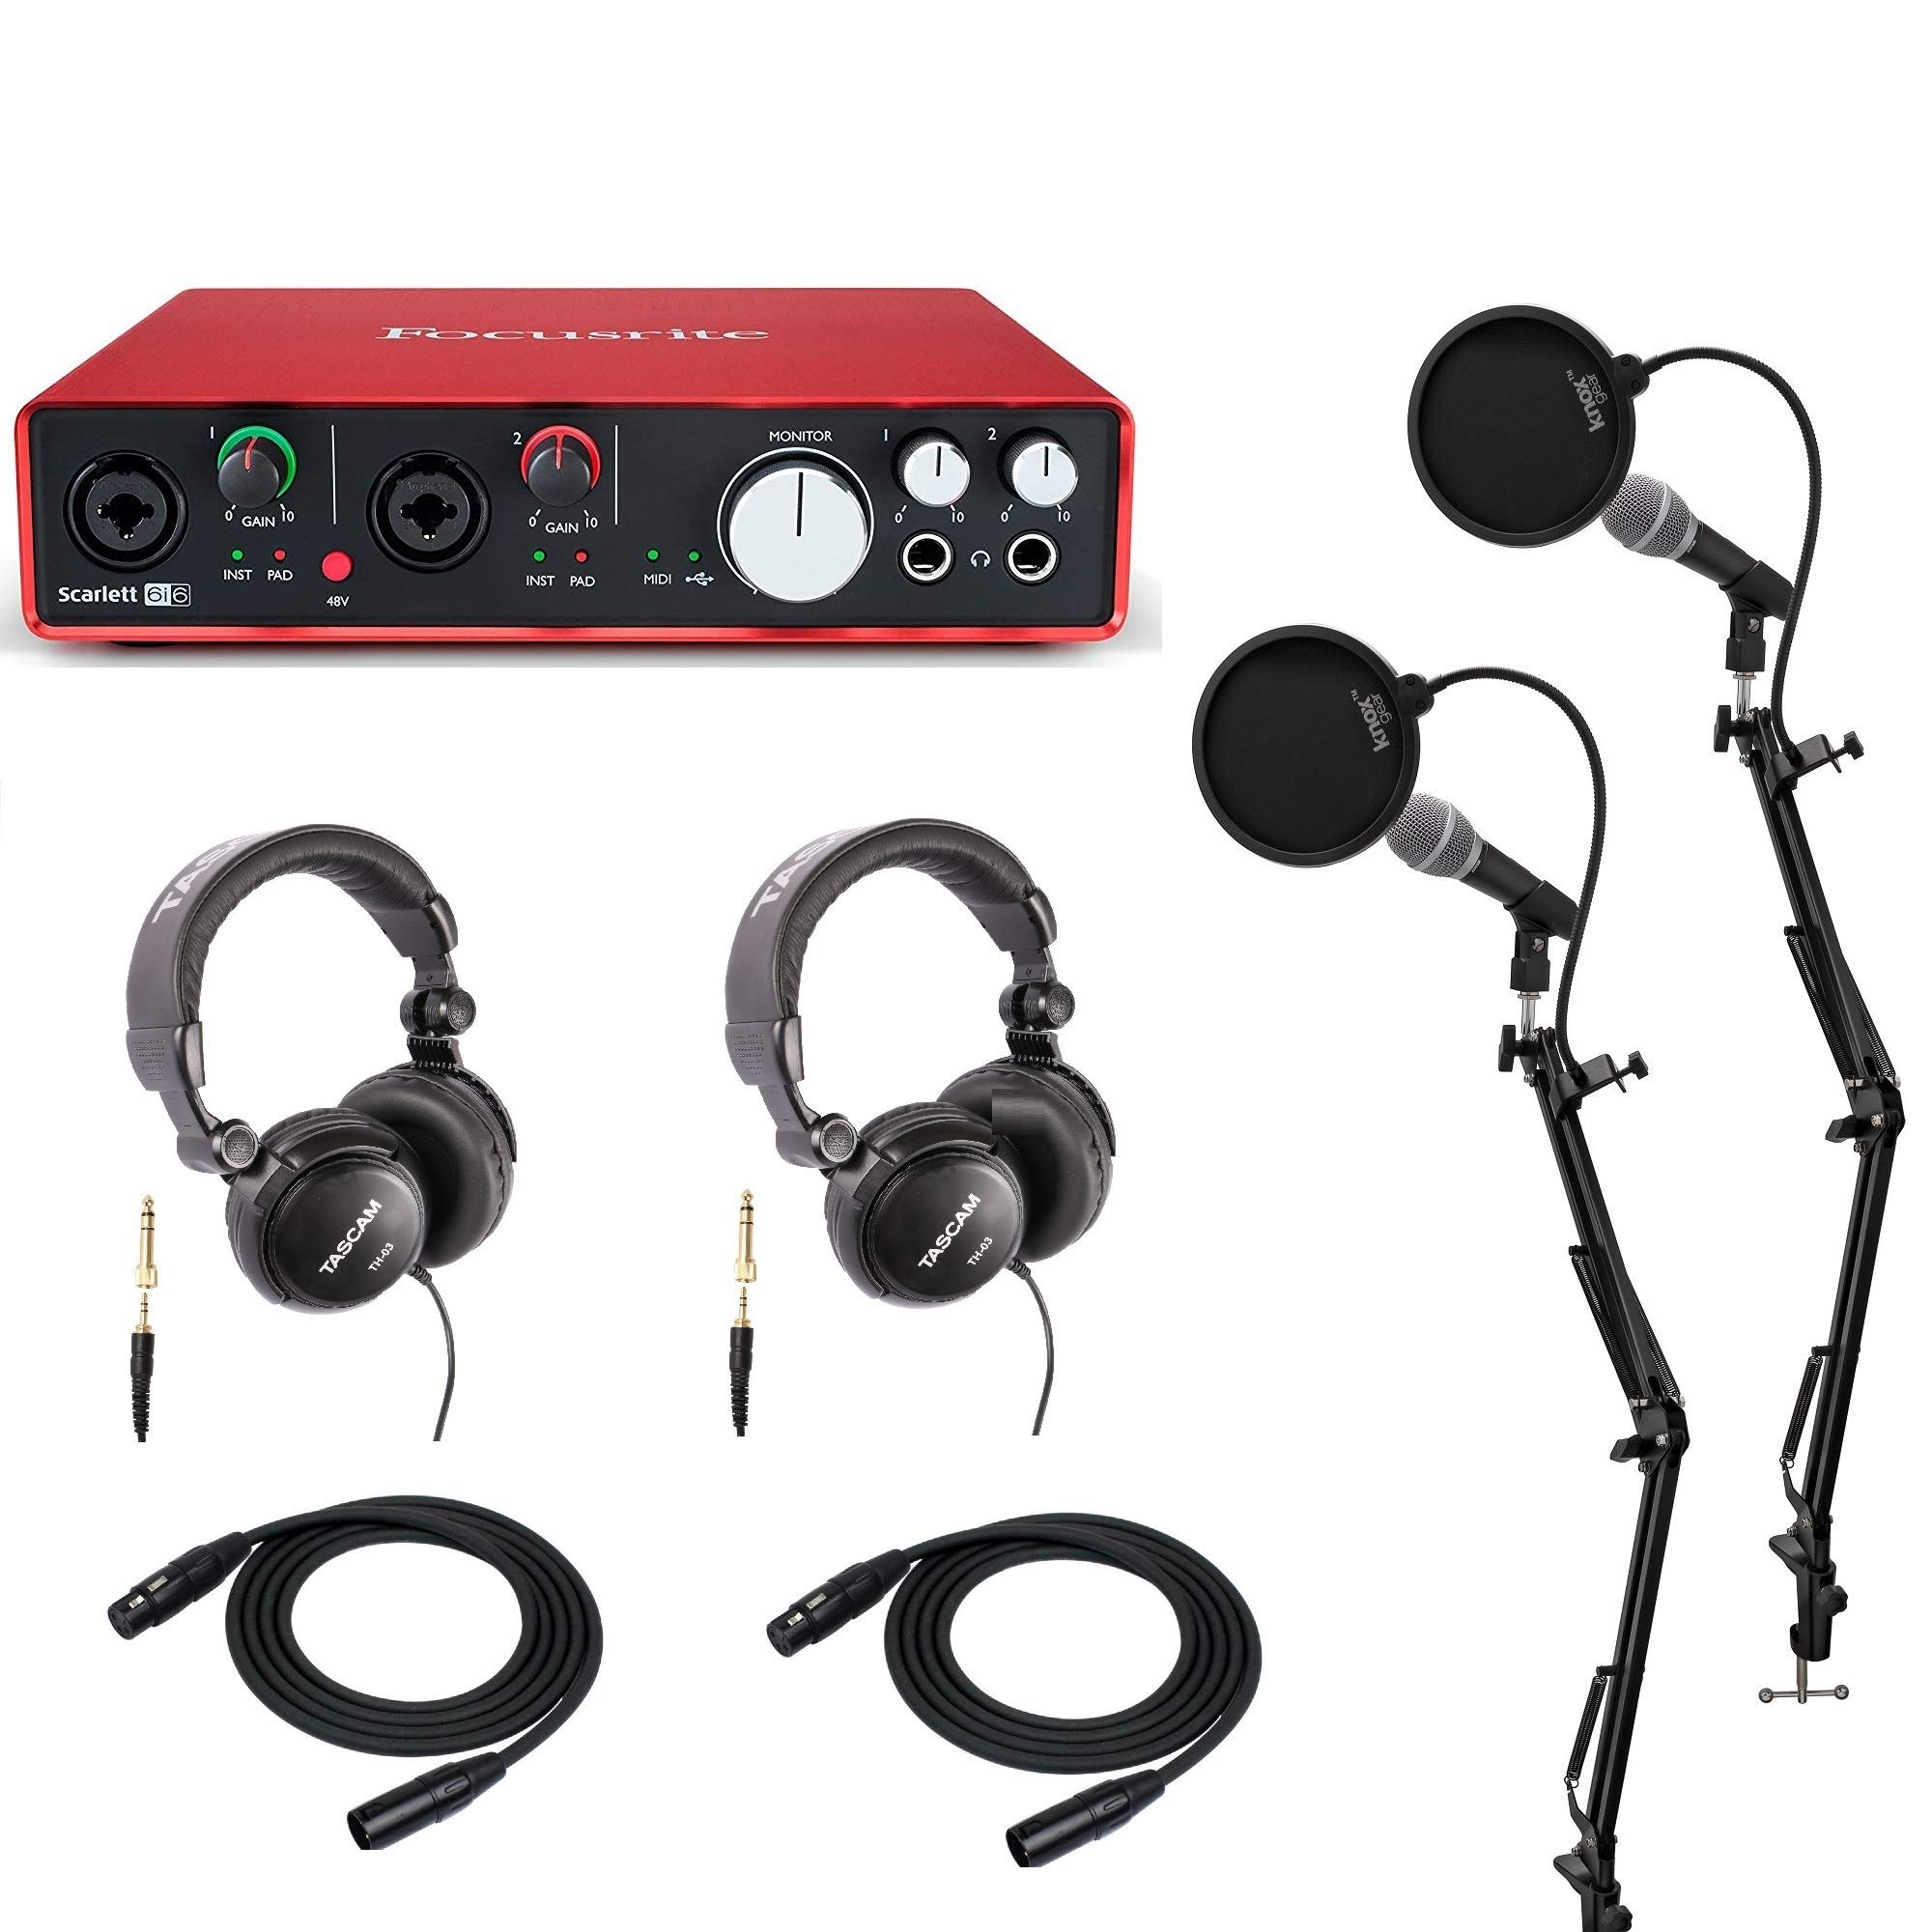 Focusrite Scarlett 6i6 USB Audio Interface Podcast Bundle with 2 Mics, 2 Knox Studio Stands, 2 Knox Pop Filters and 2 Headphones